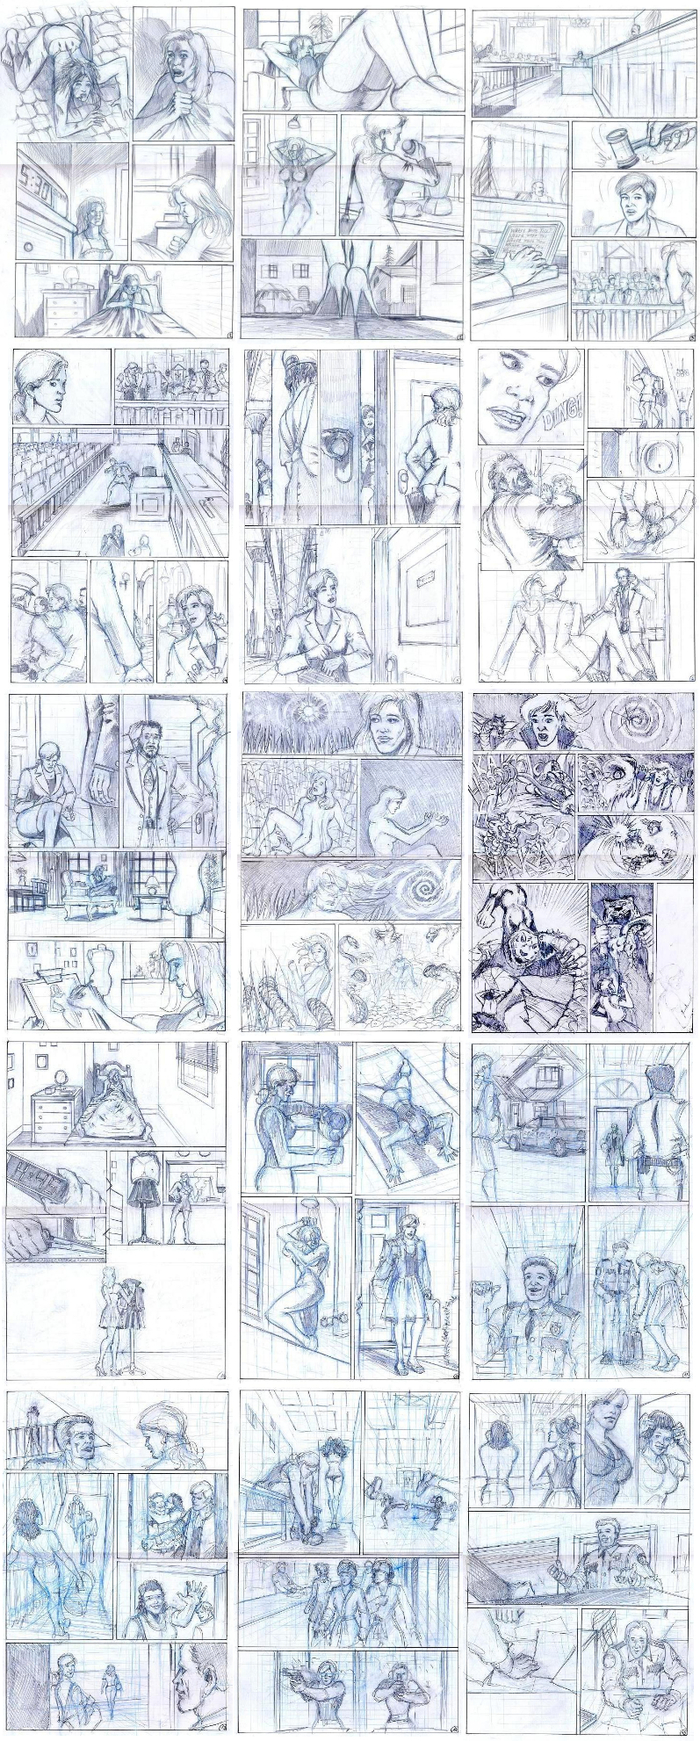 Pages Penciled by Milan Andjelkovic